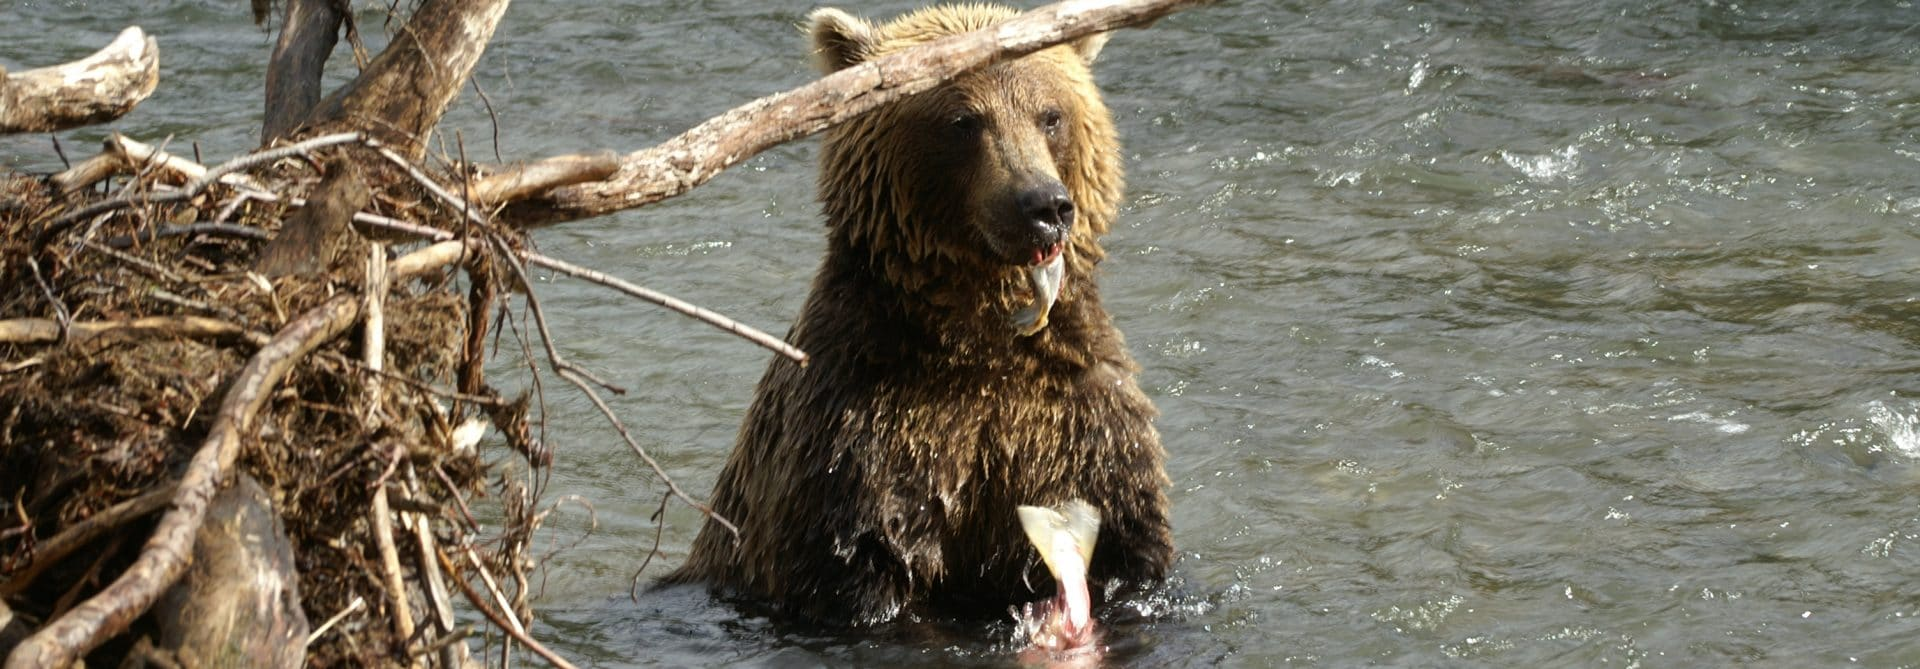 Russian Bear - Kamchatka, Russia